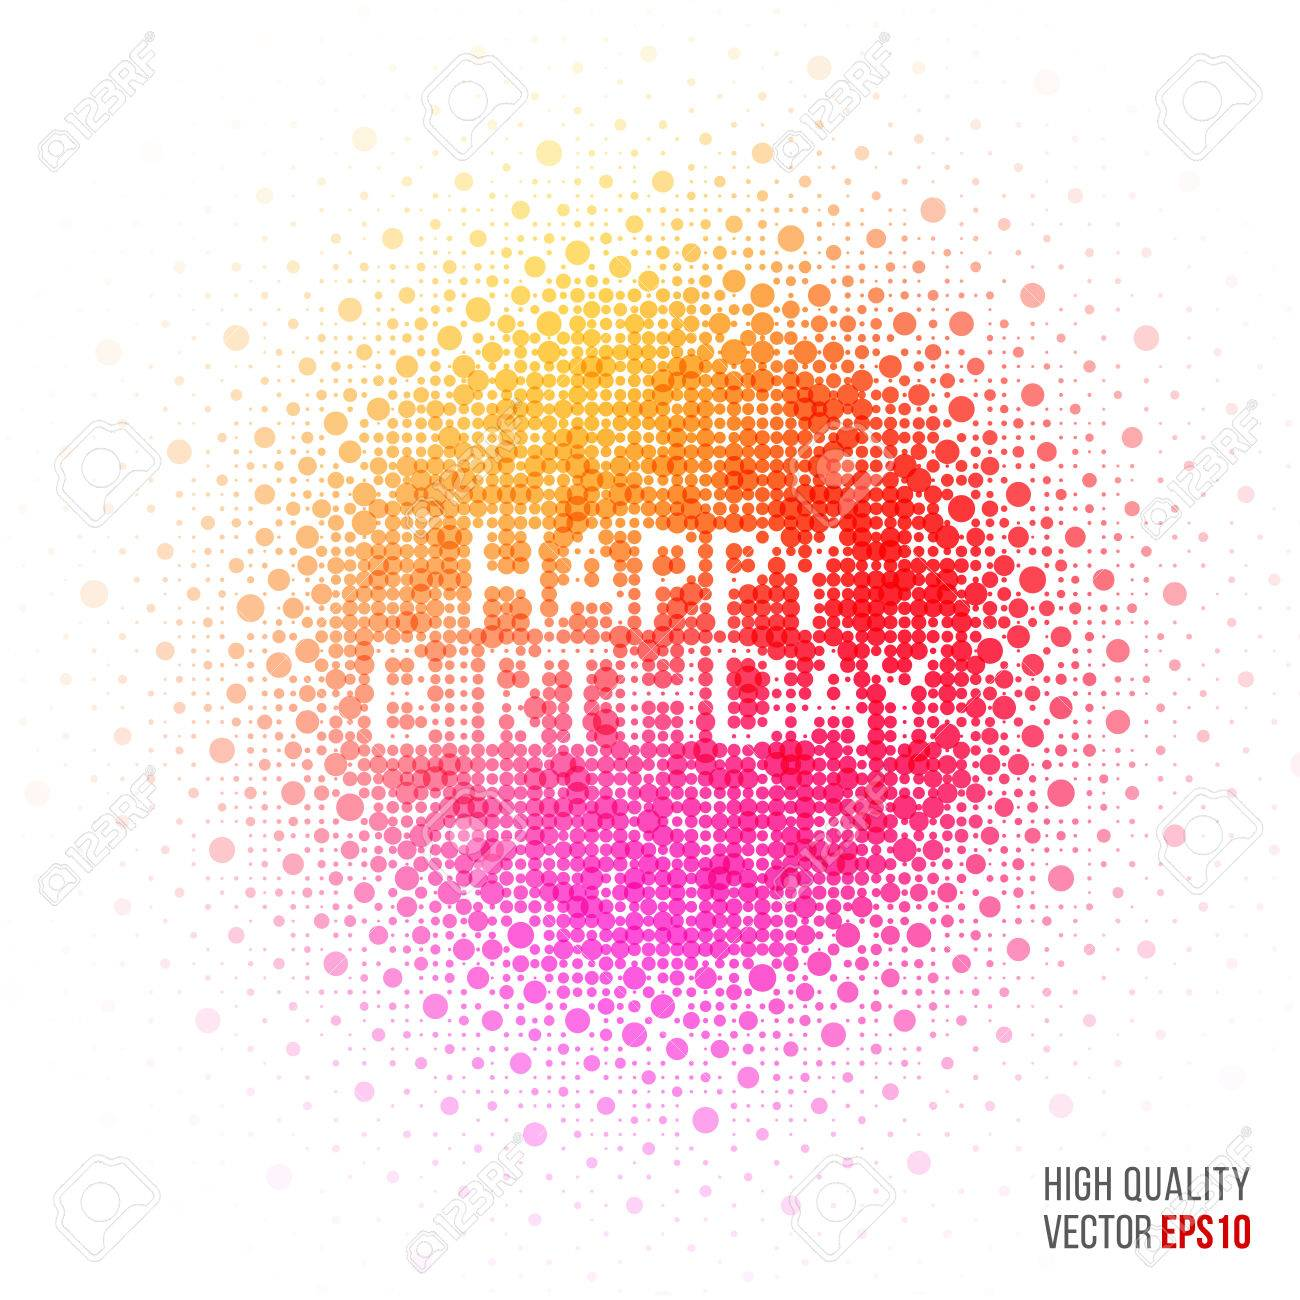 Happy Birthday Beautiful Design Element For Greeting Card Template